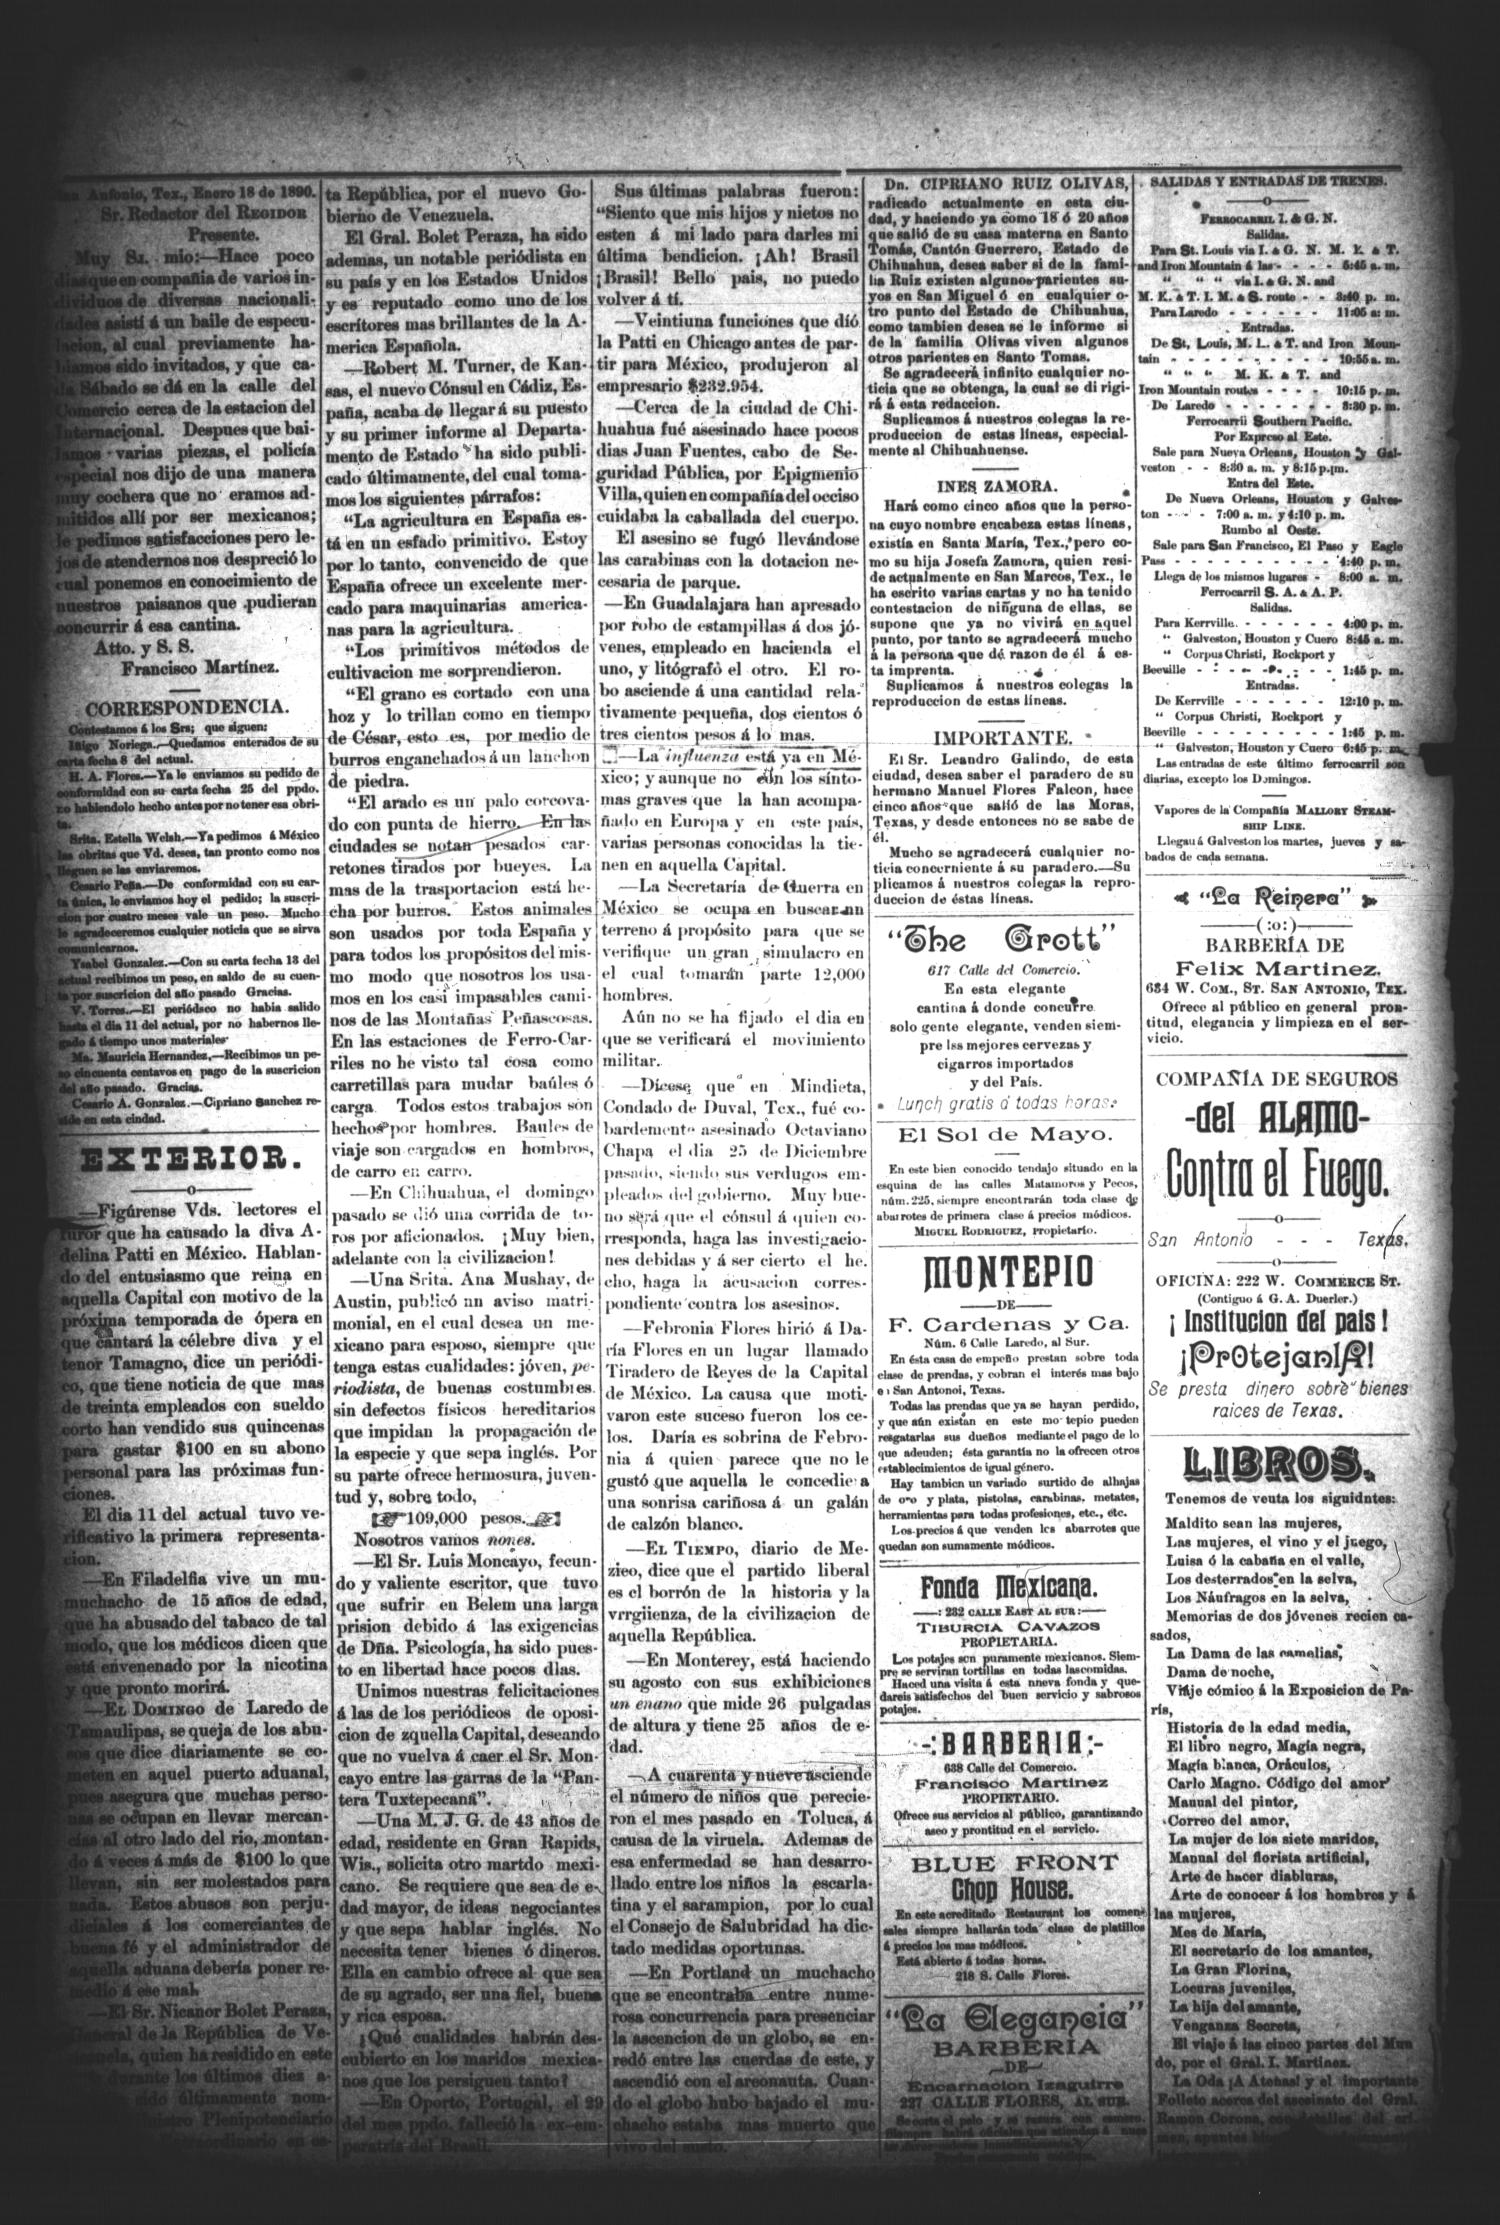 El Regidor. (San Antonio, Tex.), Vol. 2, No. 54, Ed. 1 Saturday, January 18, 1890                                                                                                      [Sequence #]: 4 of 4